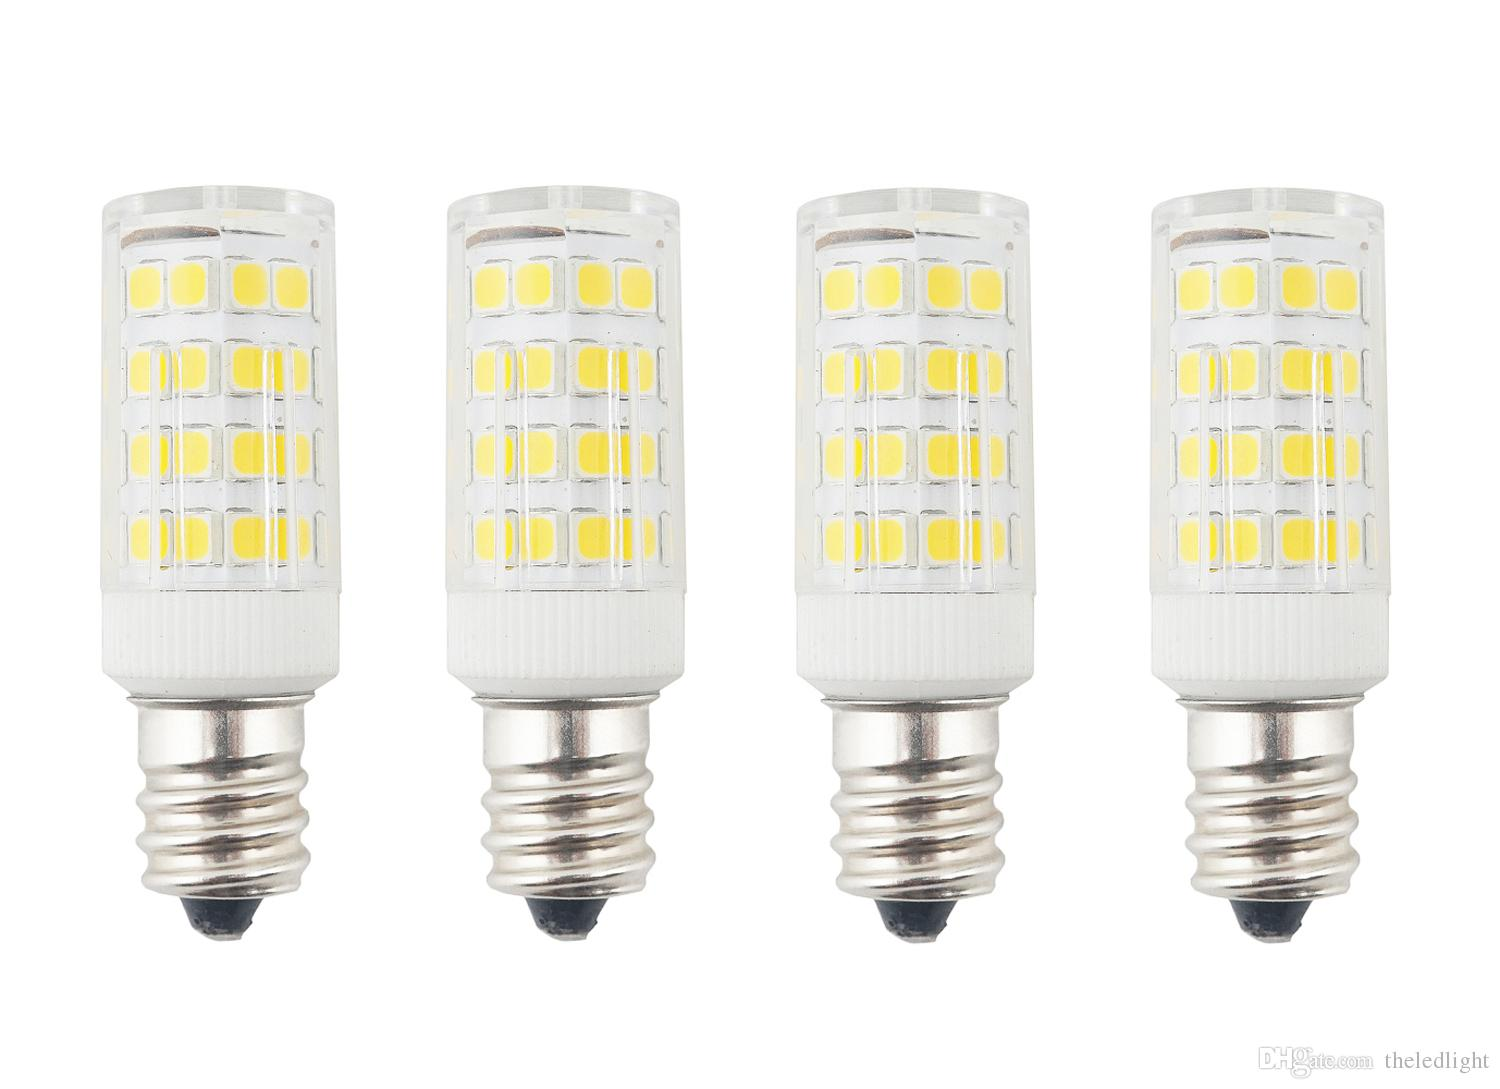 Tips for Buying LED Bulbs